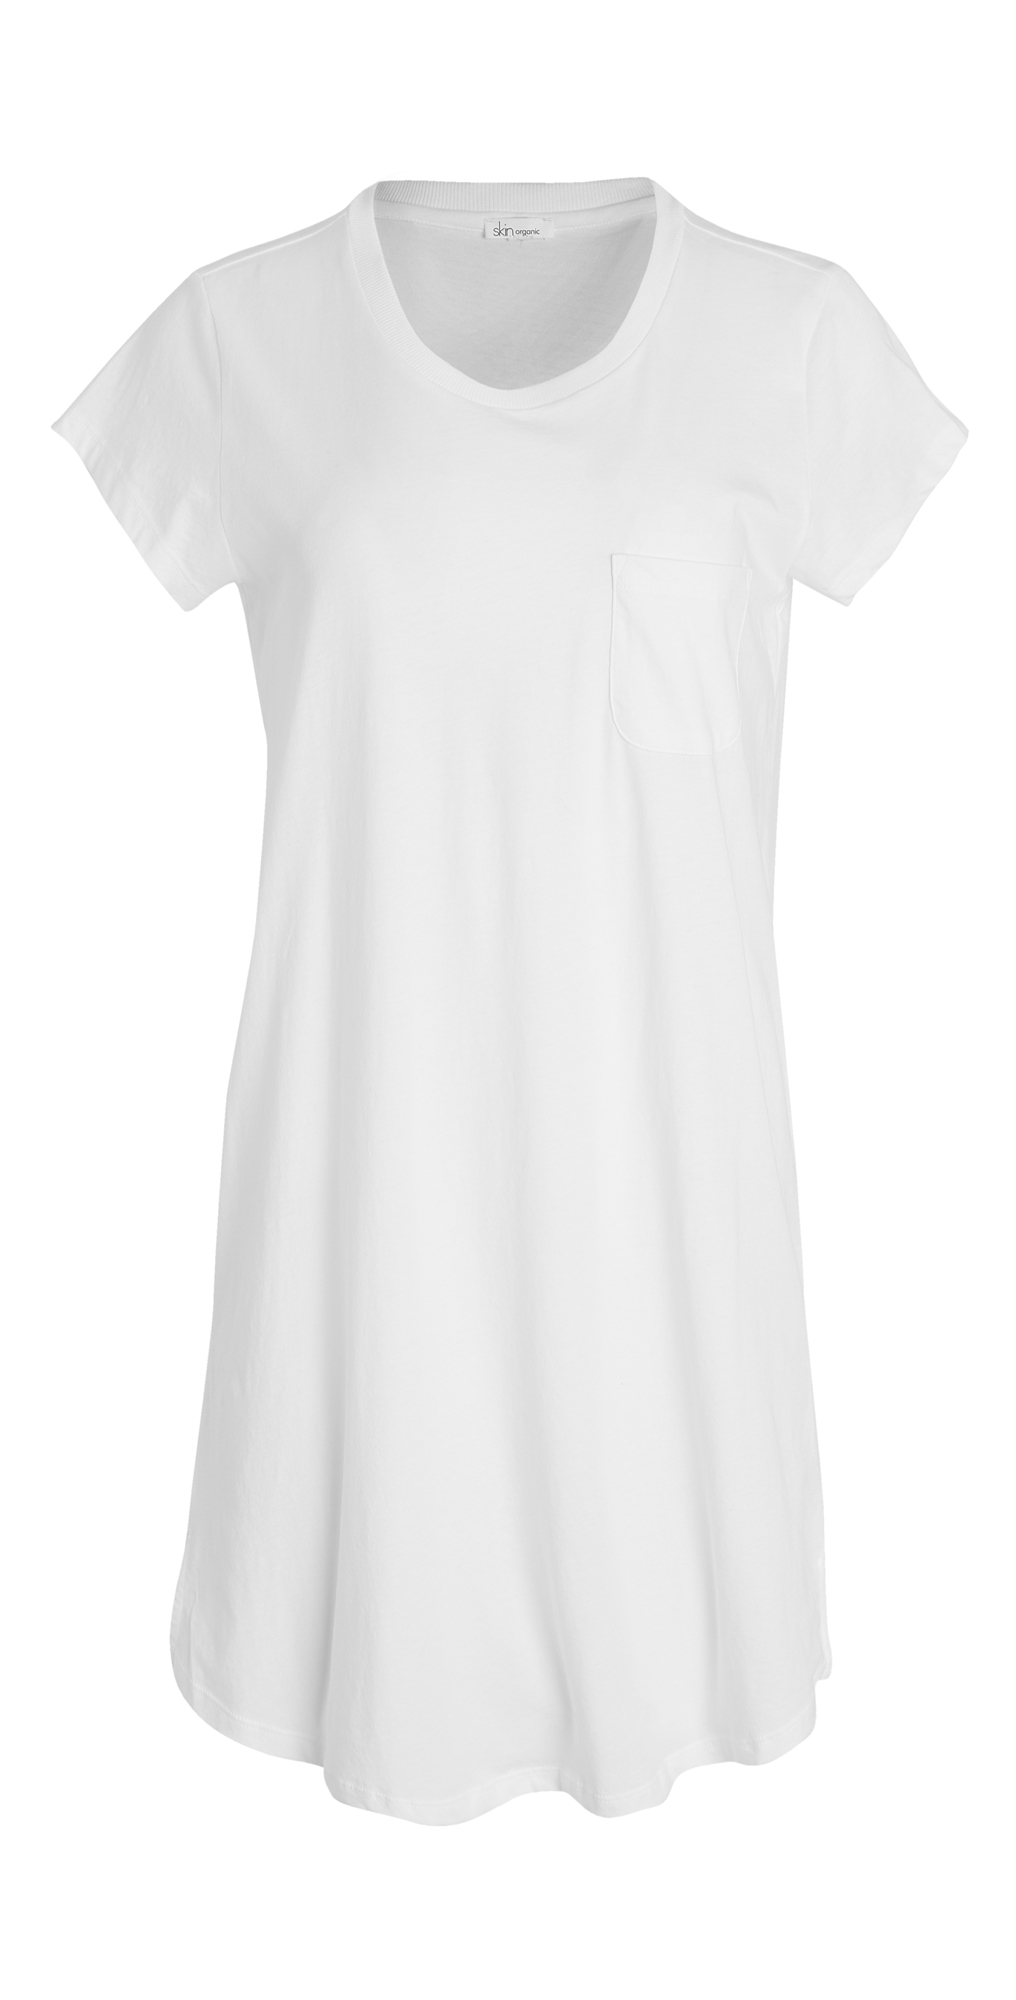 Skin Carissa Sleep Shirt